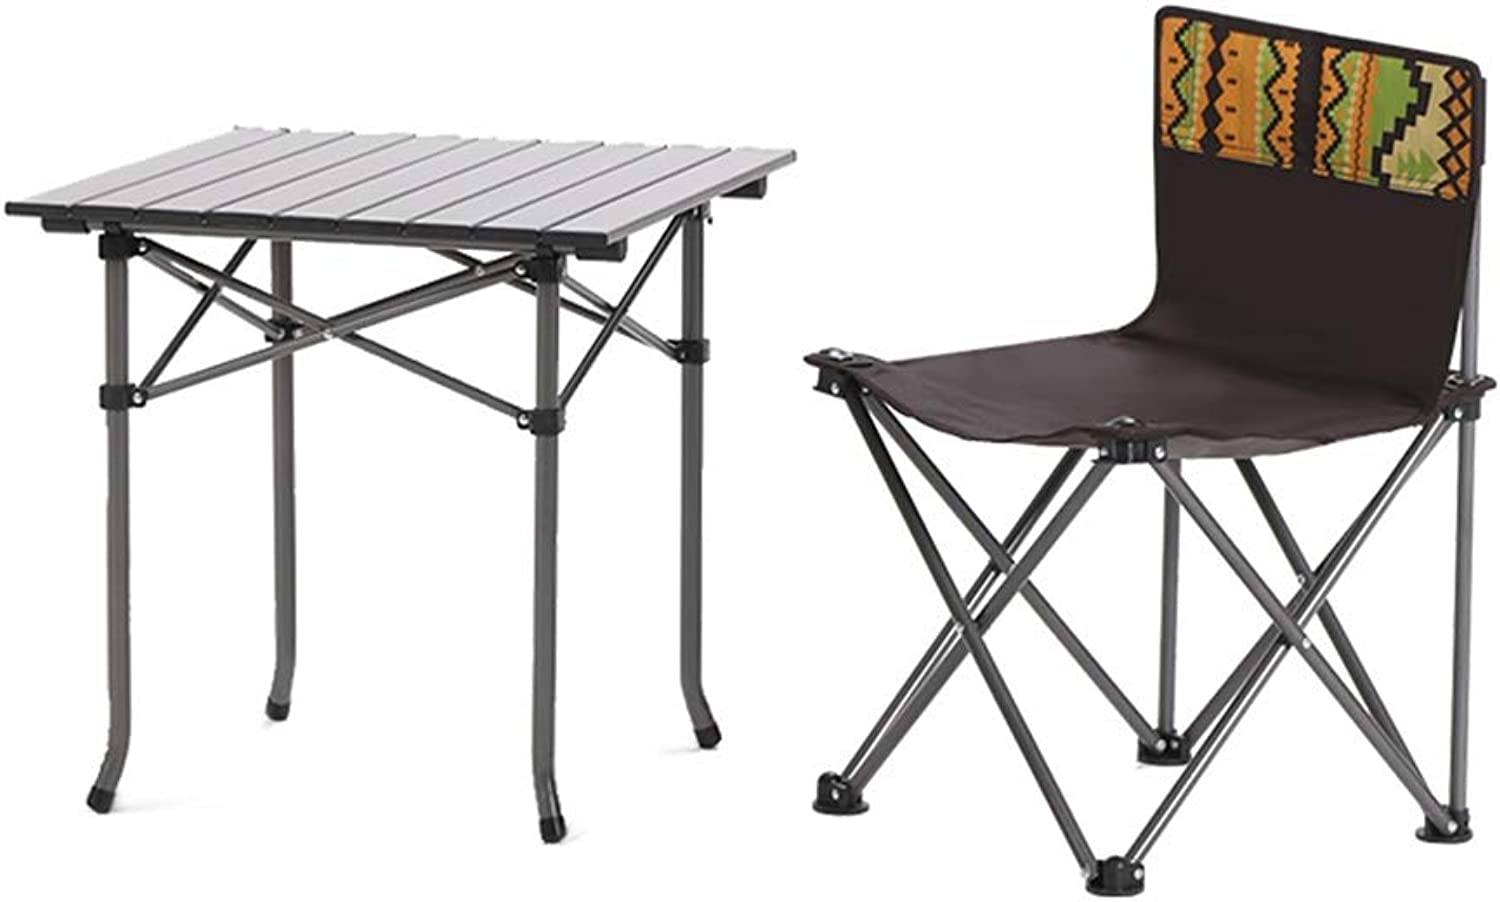 Beach Camping Concert Folding Chair and Table, Ideal for Camp, Travel, Picnic, Festival, Hiking, Party Seat Load 220lbs